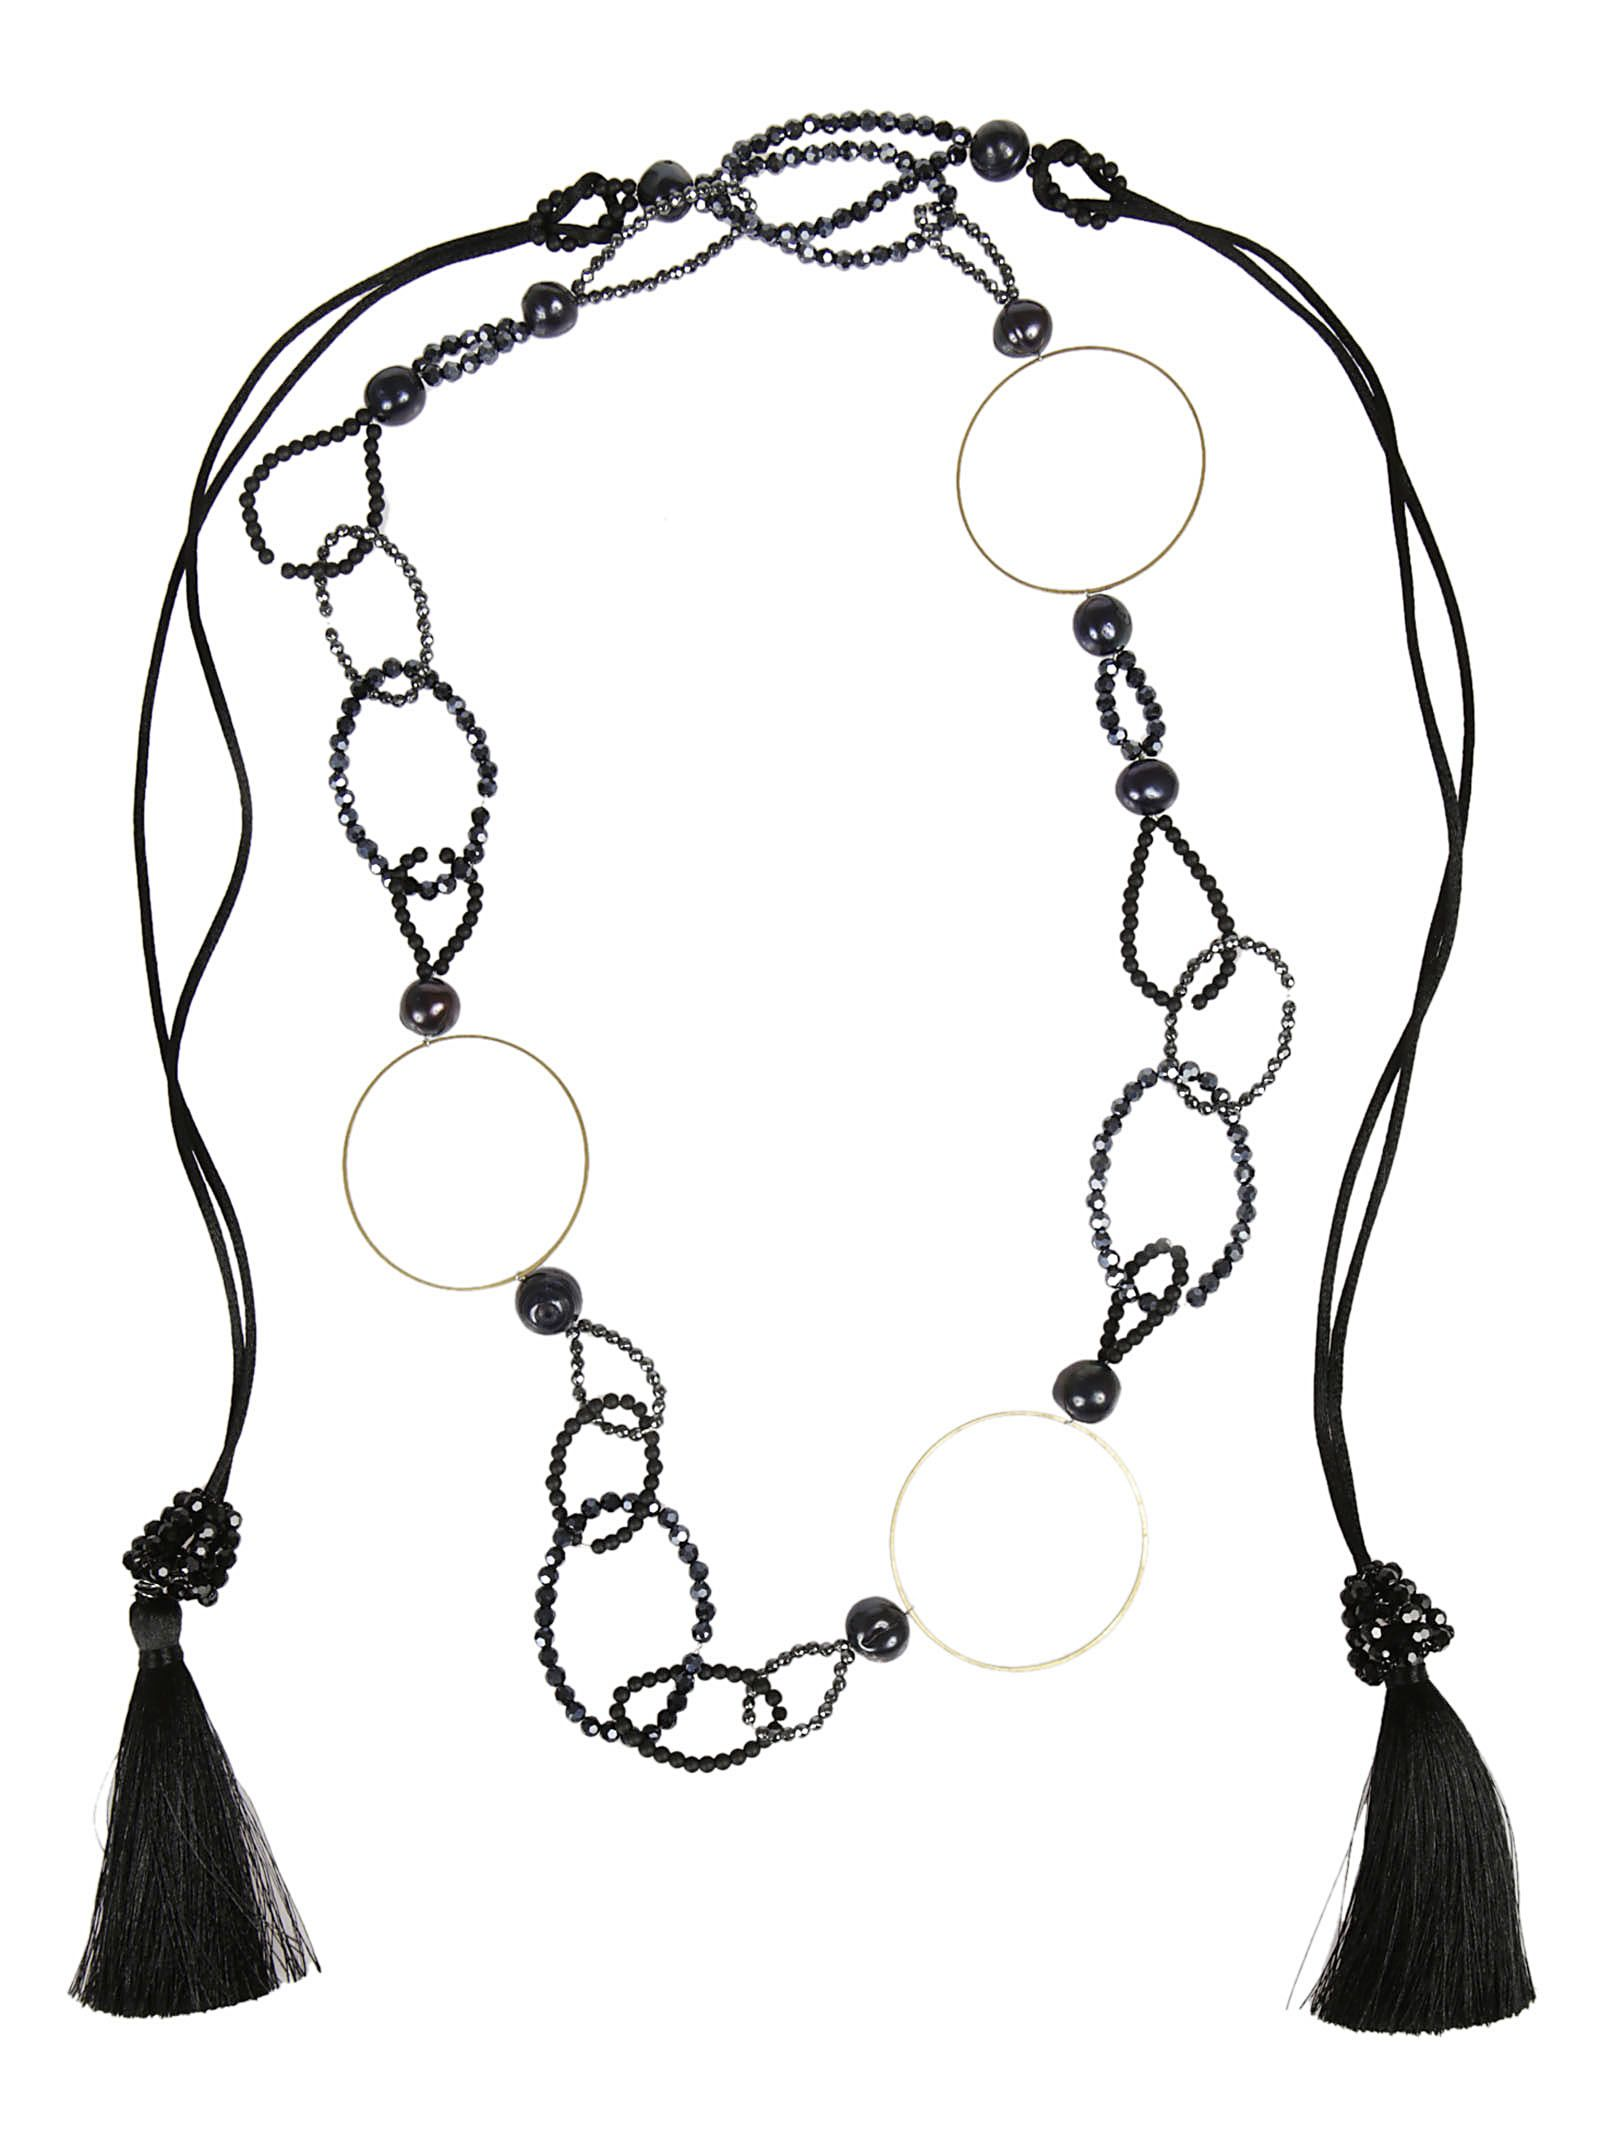 bead and ring long necklace - Black Night Market mSJHDVu